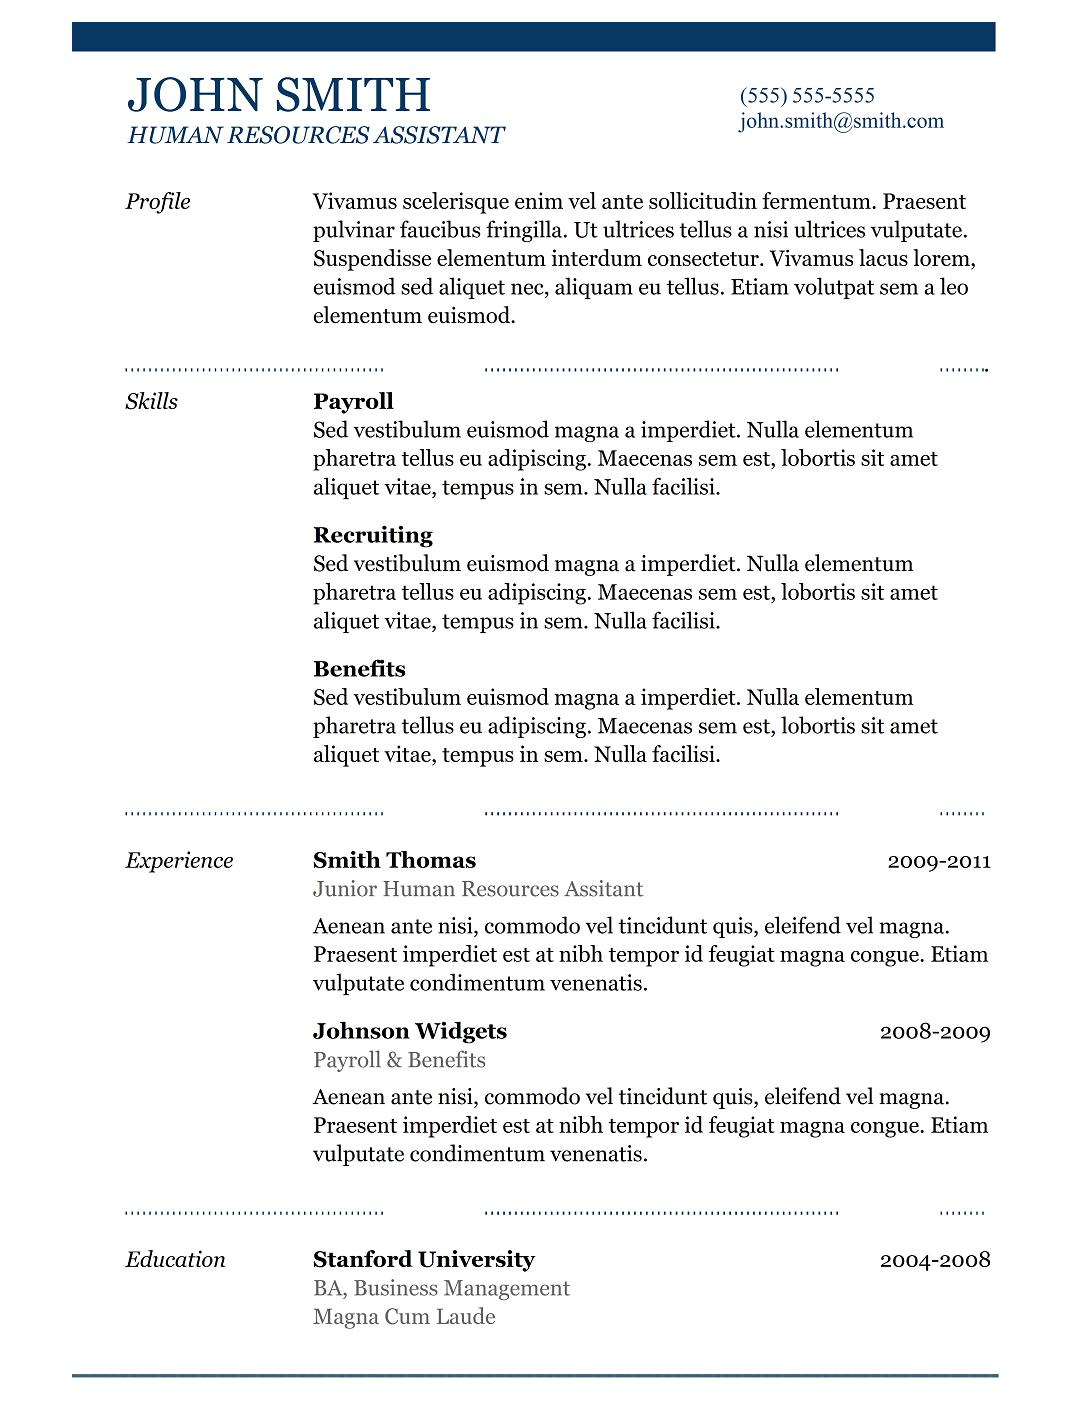 samples of cv templates format best professional resume templates